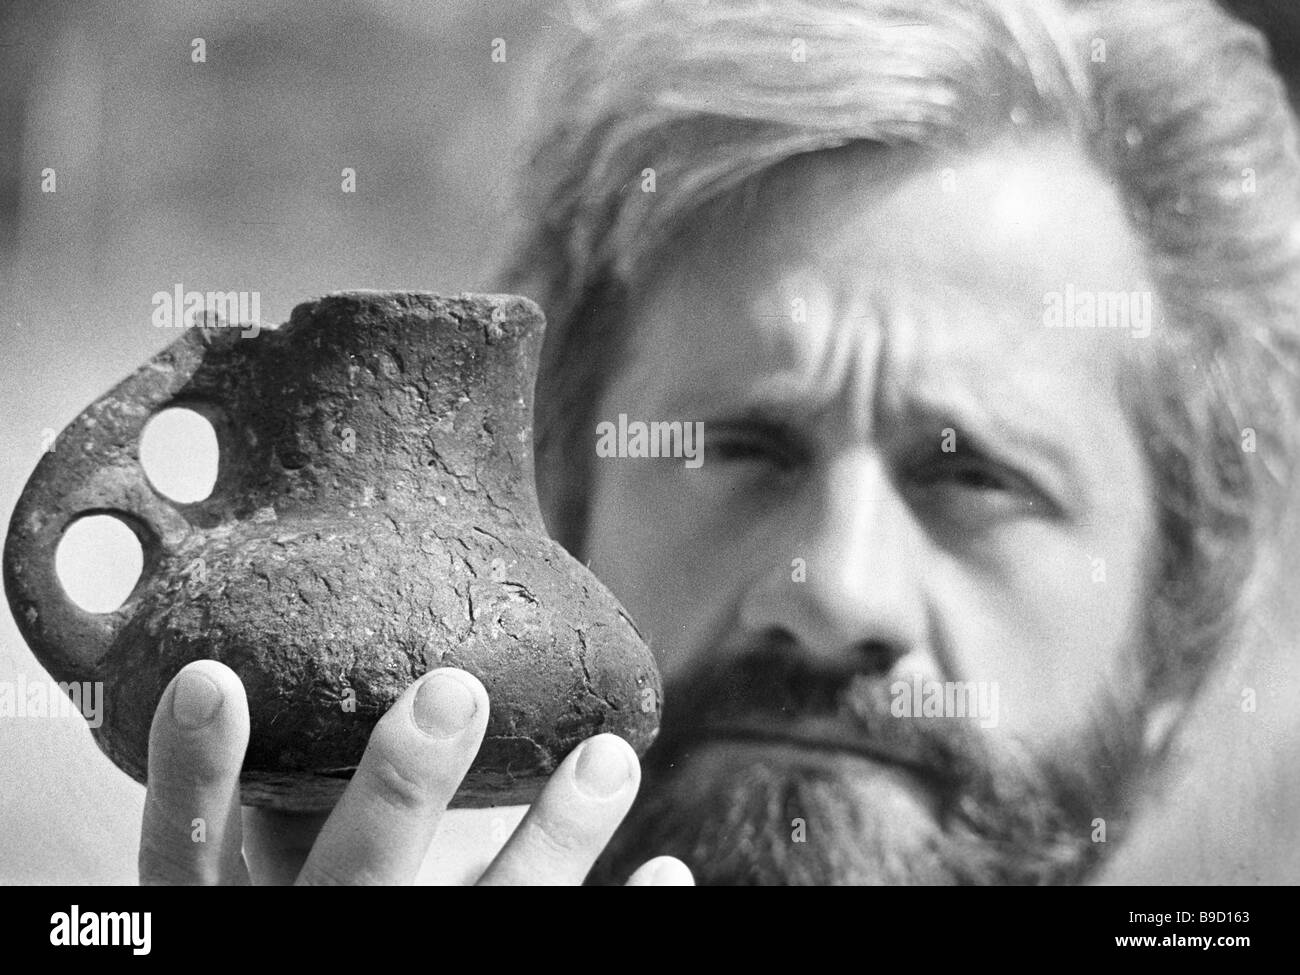 An expedition member of the Institute of Archaeology of the Ukrainian Academy of Sciences demonstrating a ceramic - Stock Image